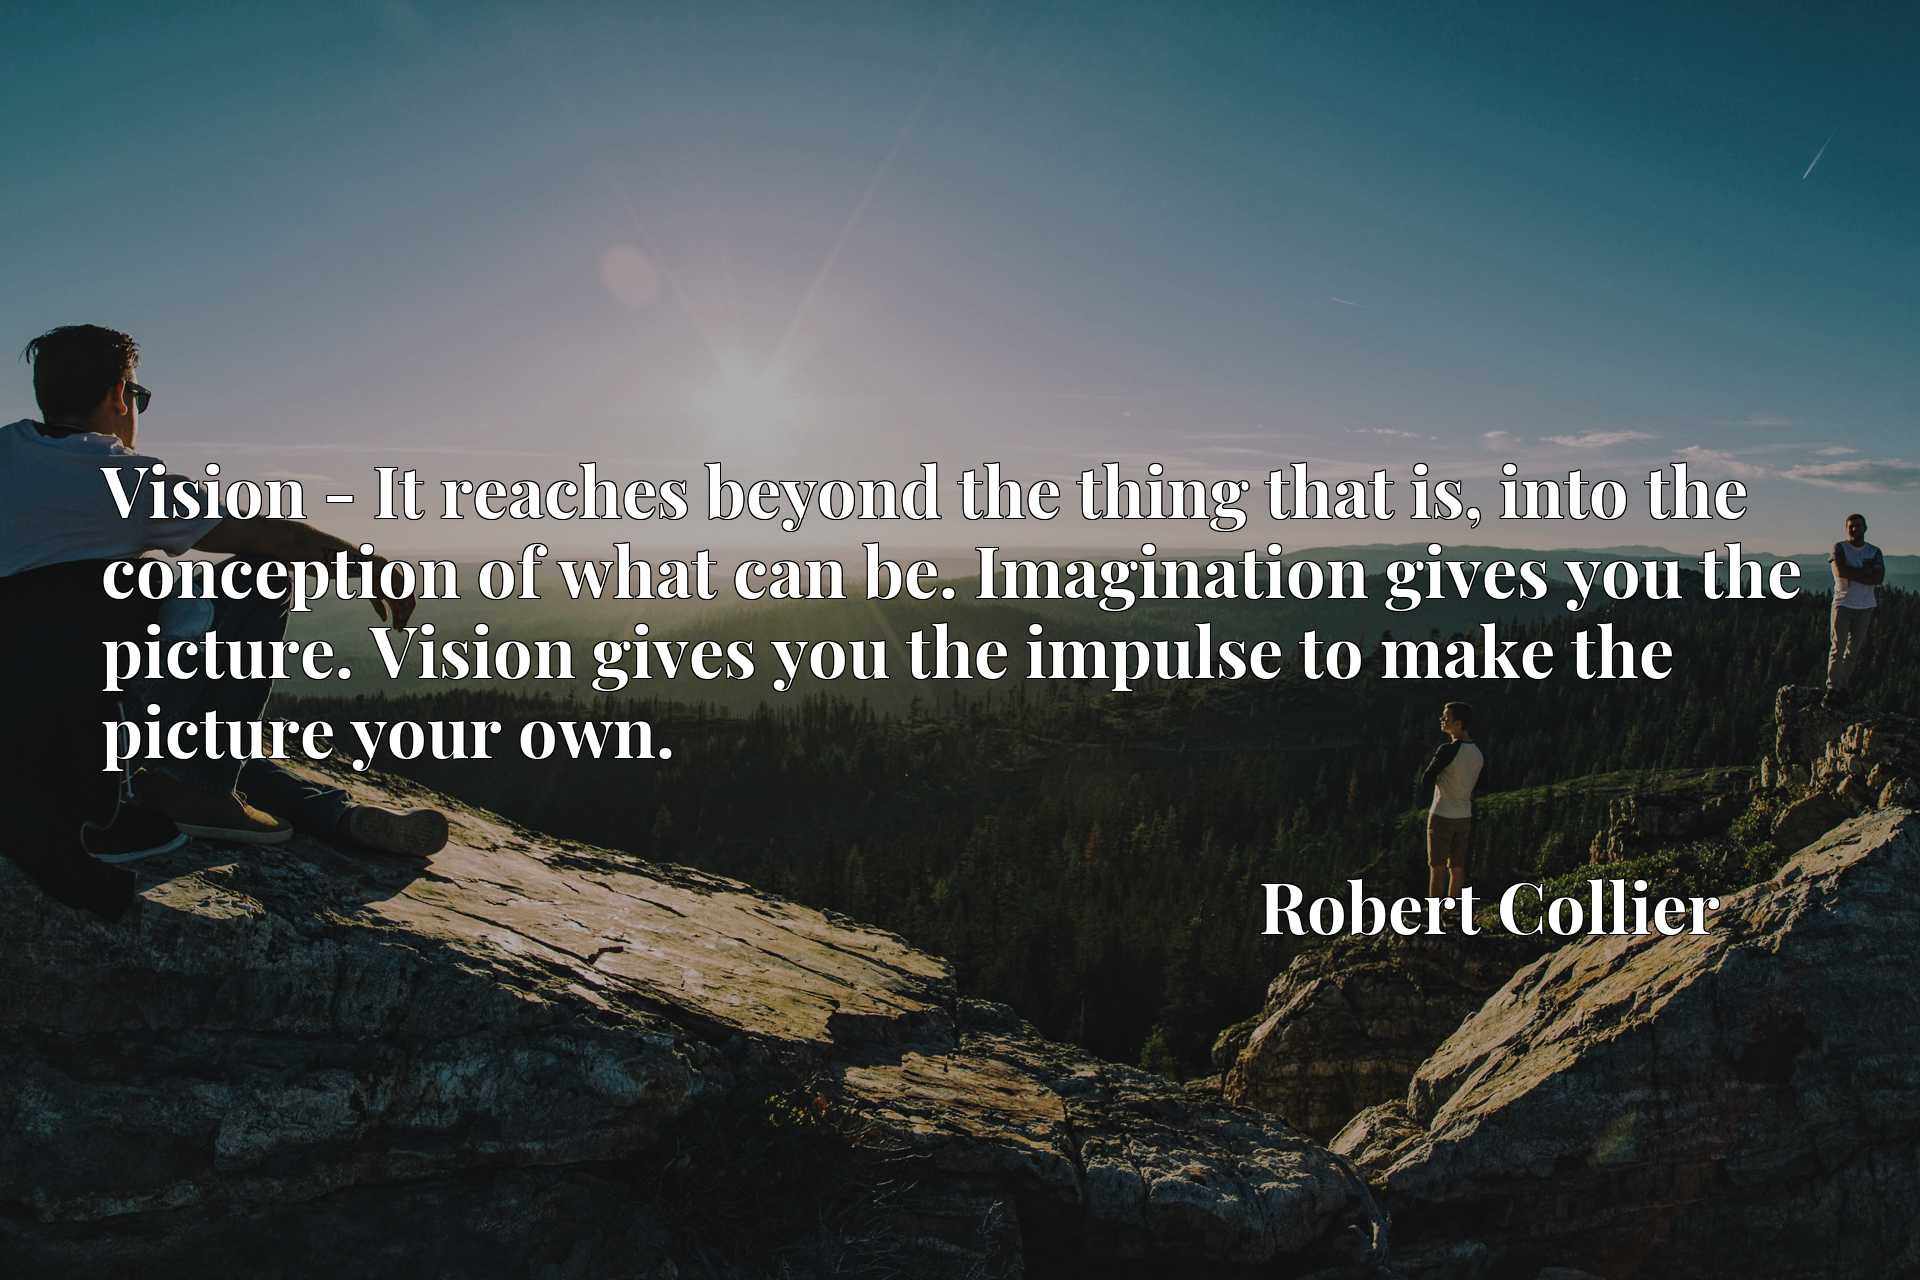 Quote Picture :Vision - It reaches beyond the thing that is, into the conception of what can be. Imagination gives you the picture. Vision gives you the impulse to make the picture your own.